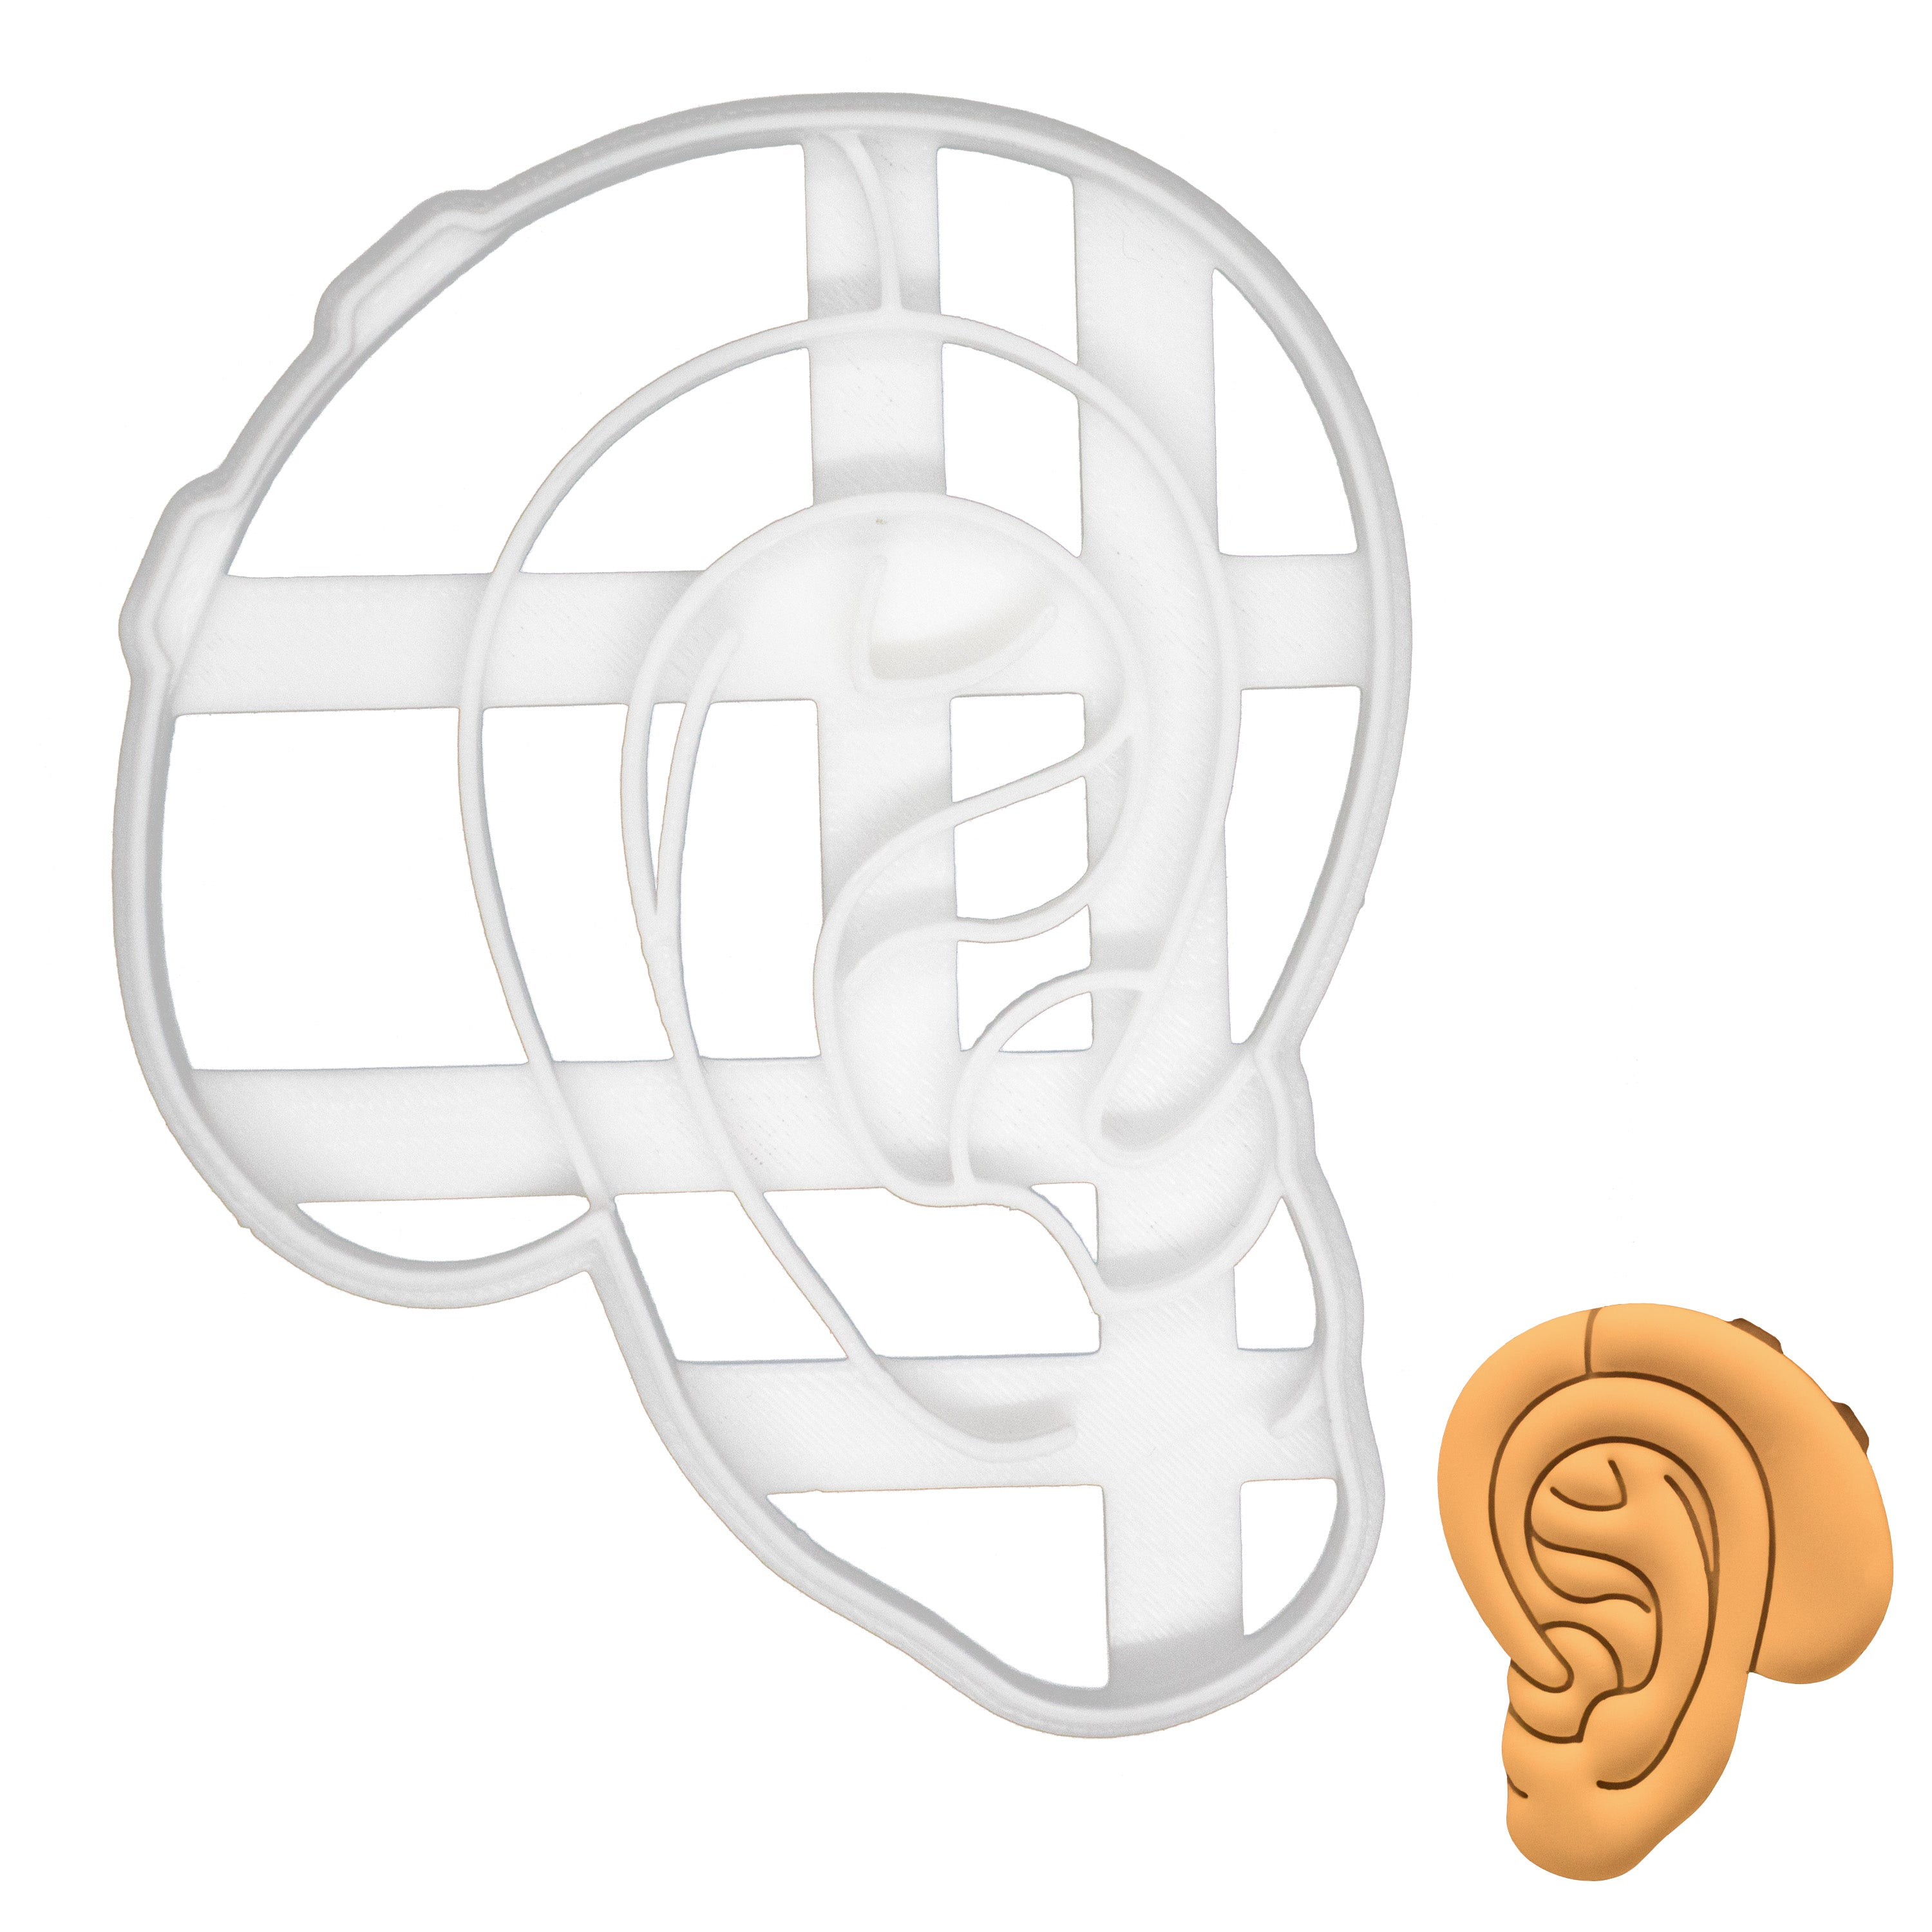 hearing aid cookie cutter